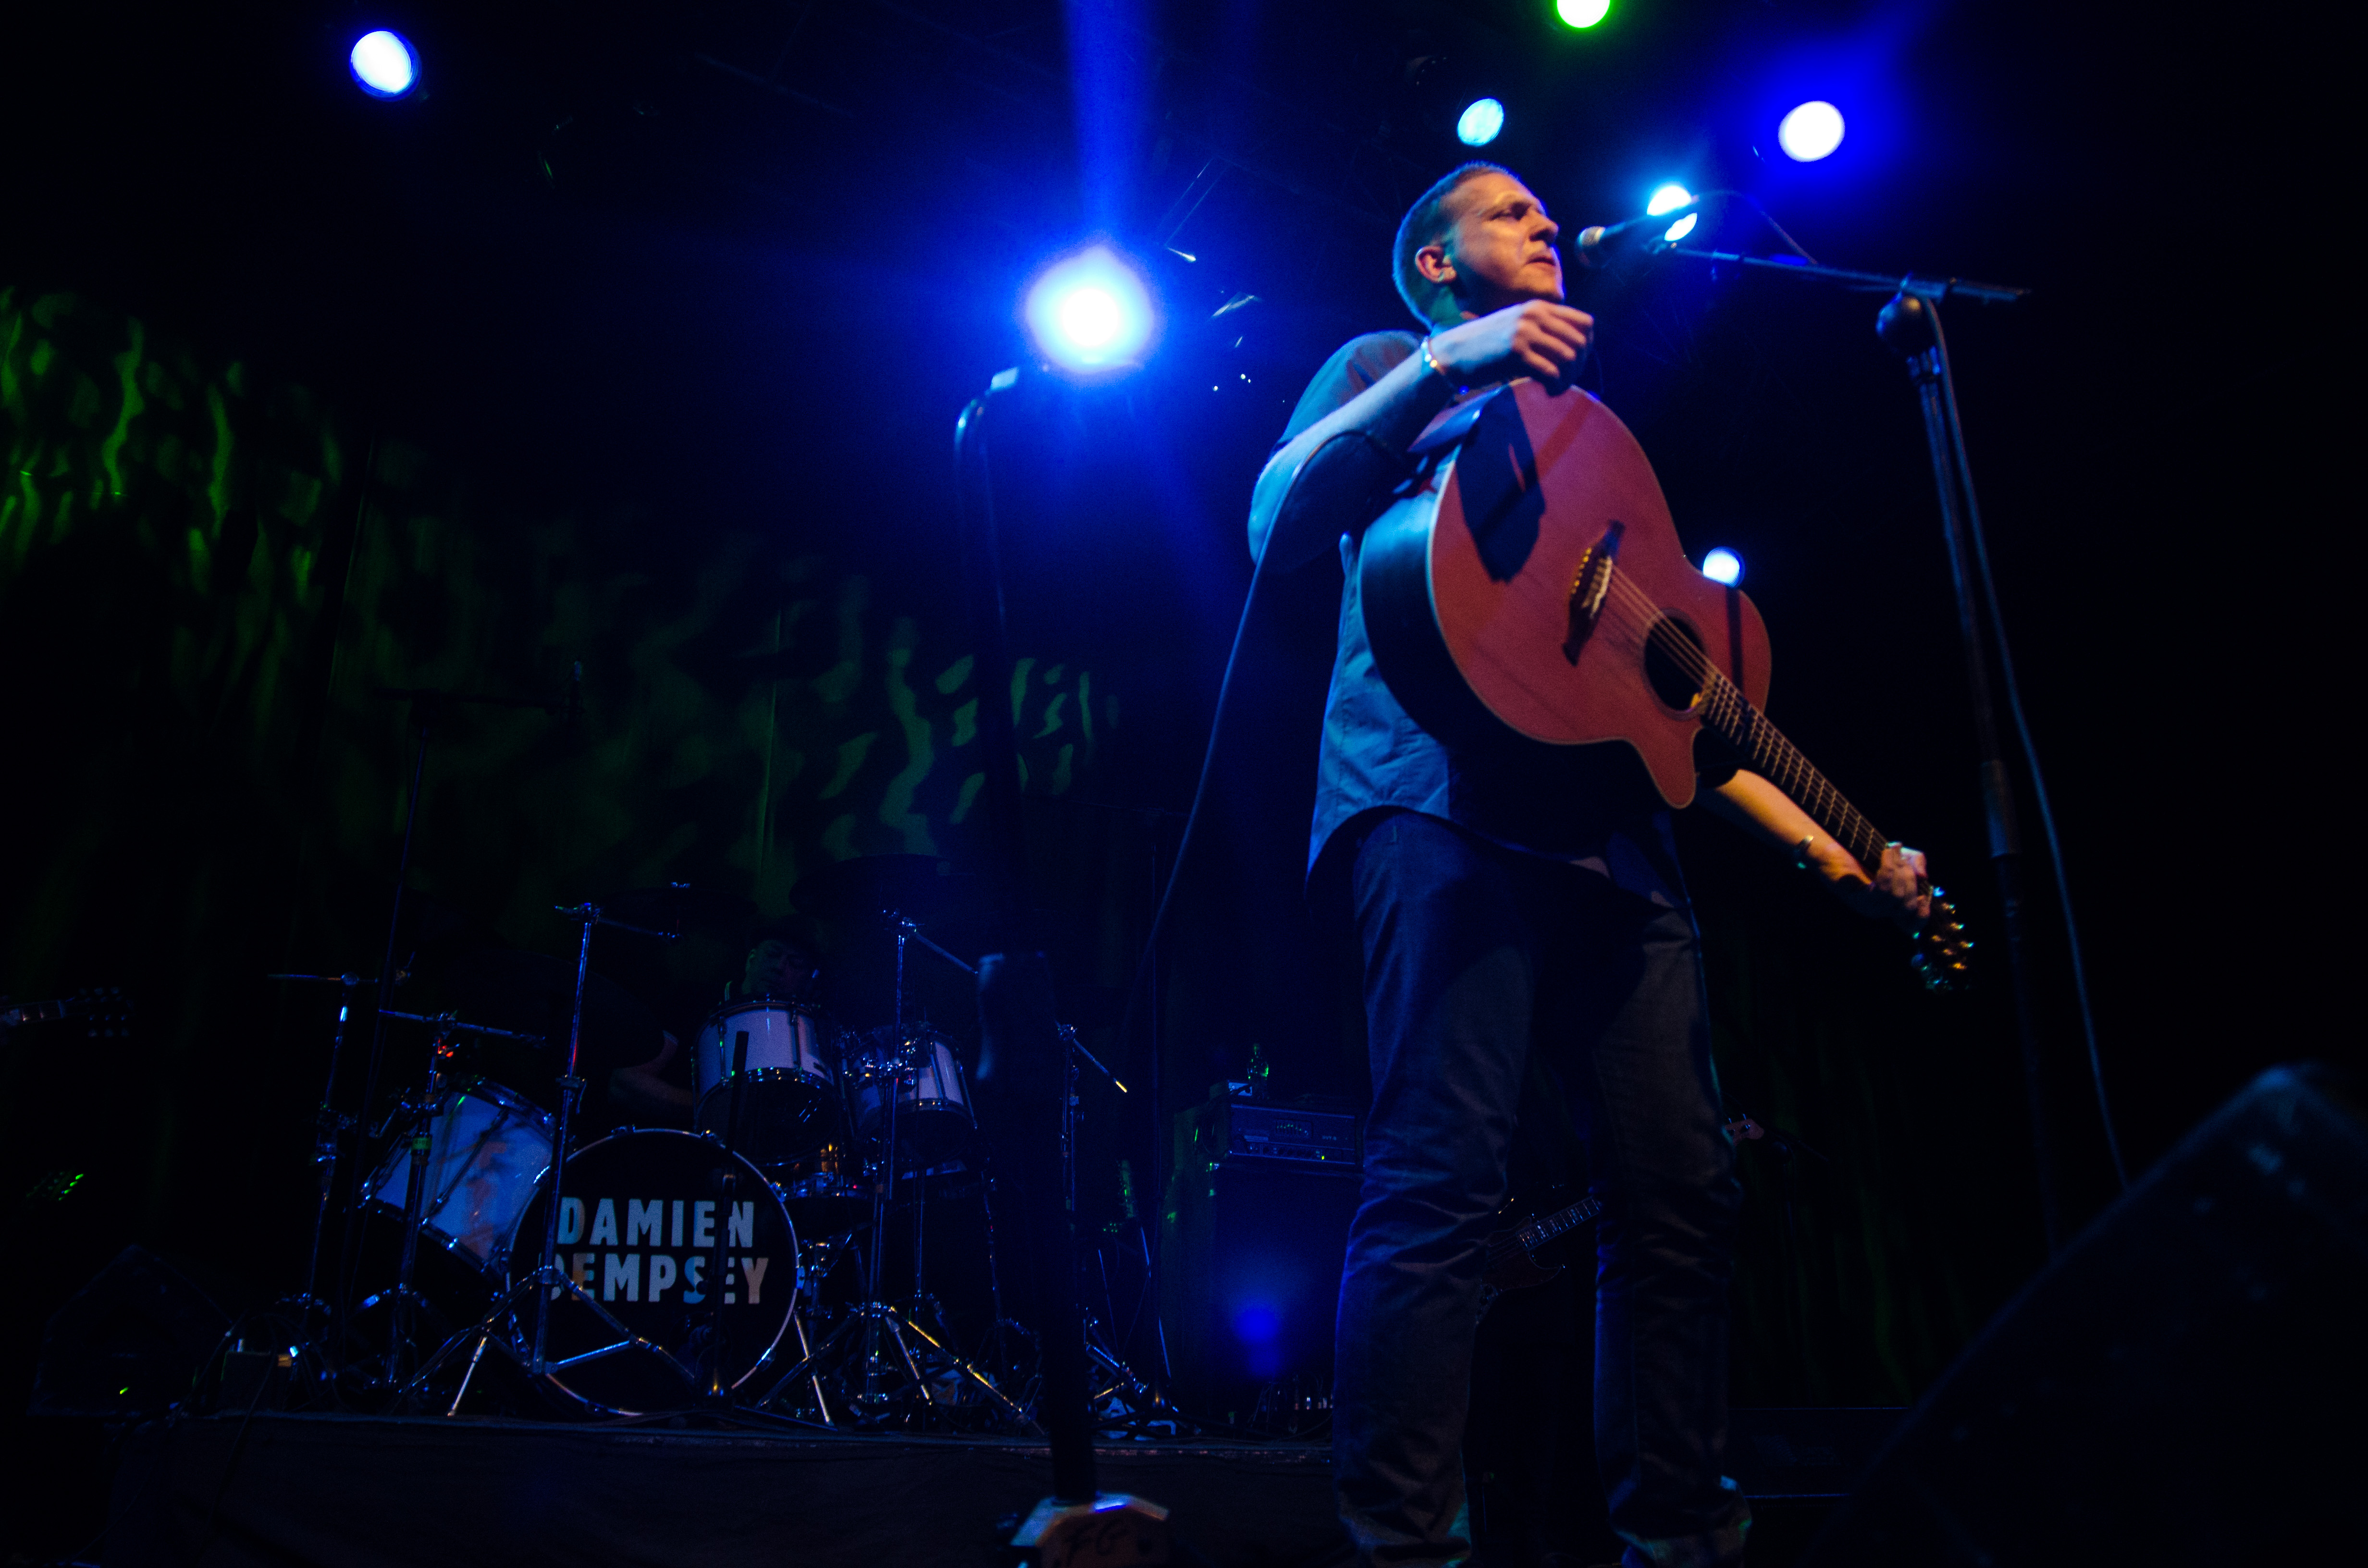 damien-dempsey-at-vicar-street-by-sean-smyth-19-12-15-29-of-34